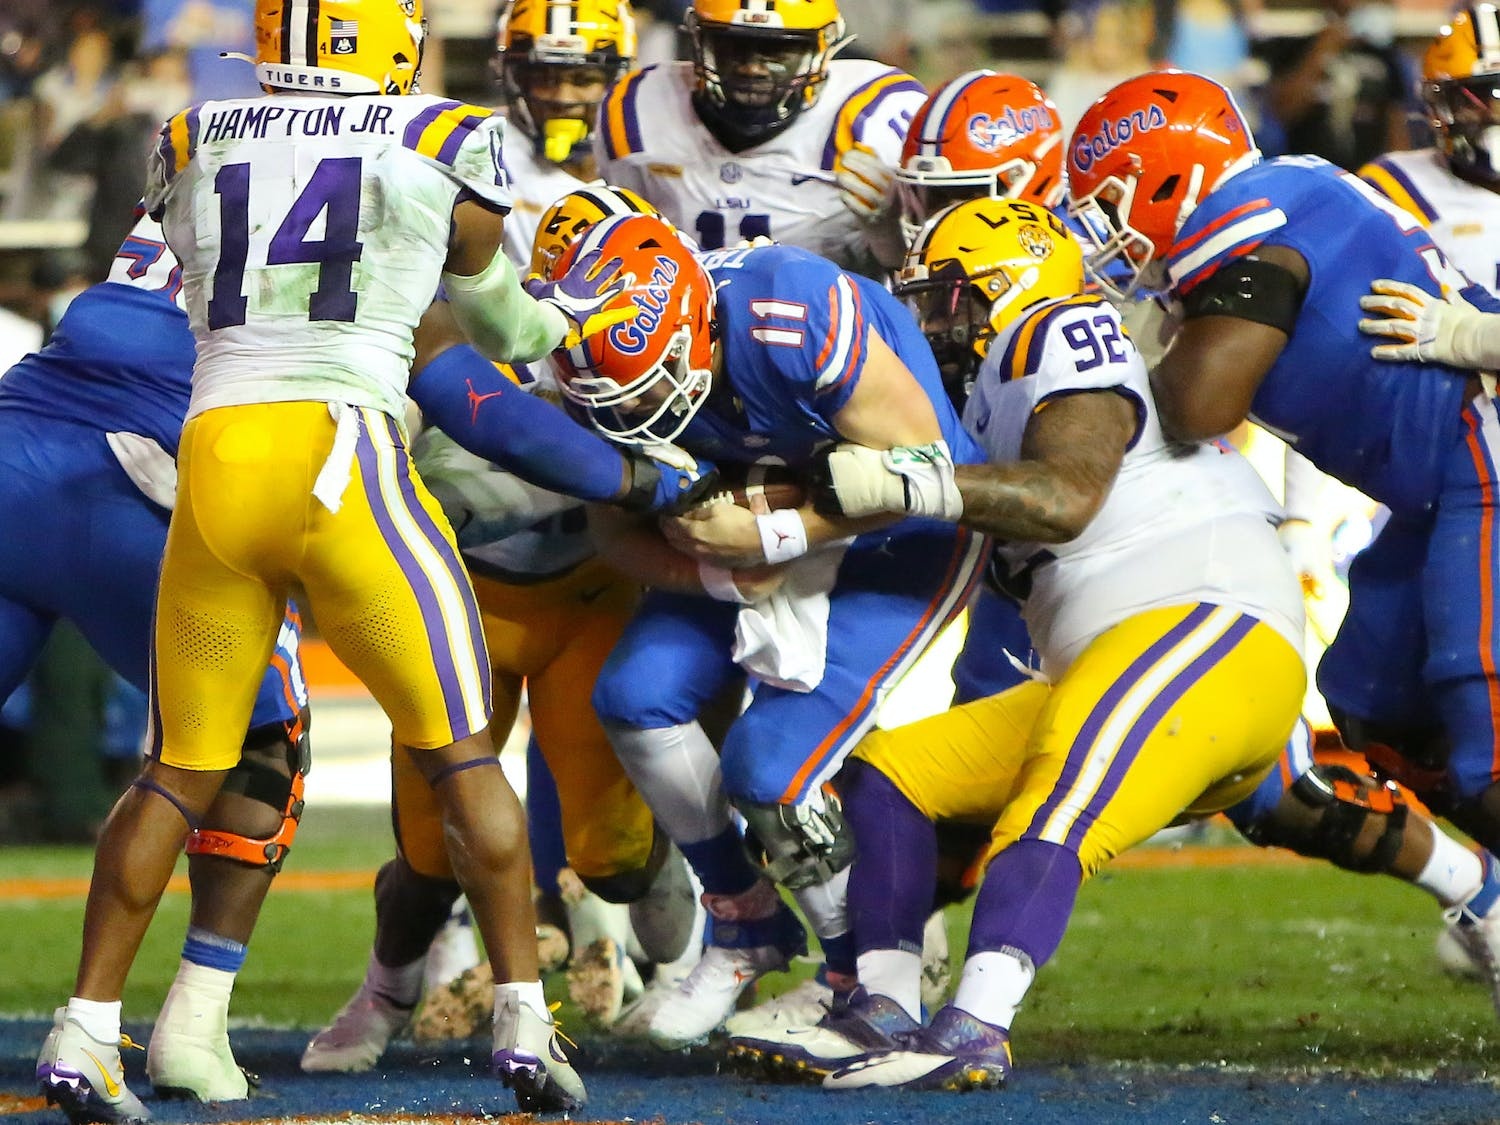 Gators quarterbacks Kyle Trask (11) runs the ball in for the Gators' first touchdown against LSU Saturday night. [Brad McClenny/The Gainesville Sun]